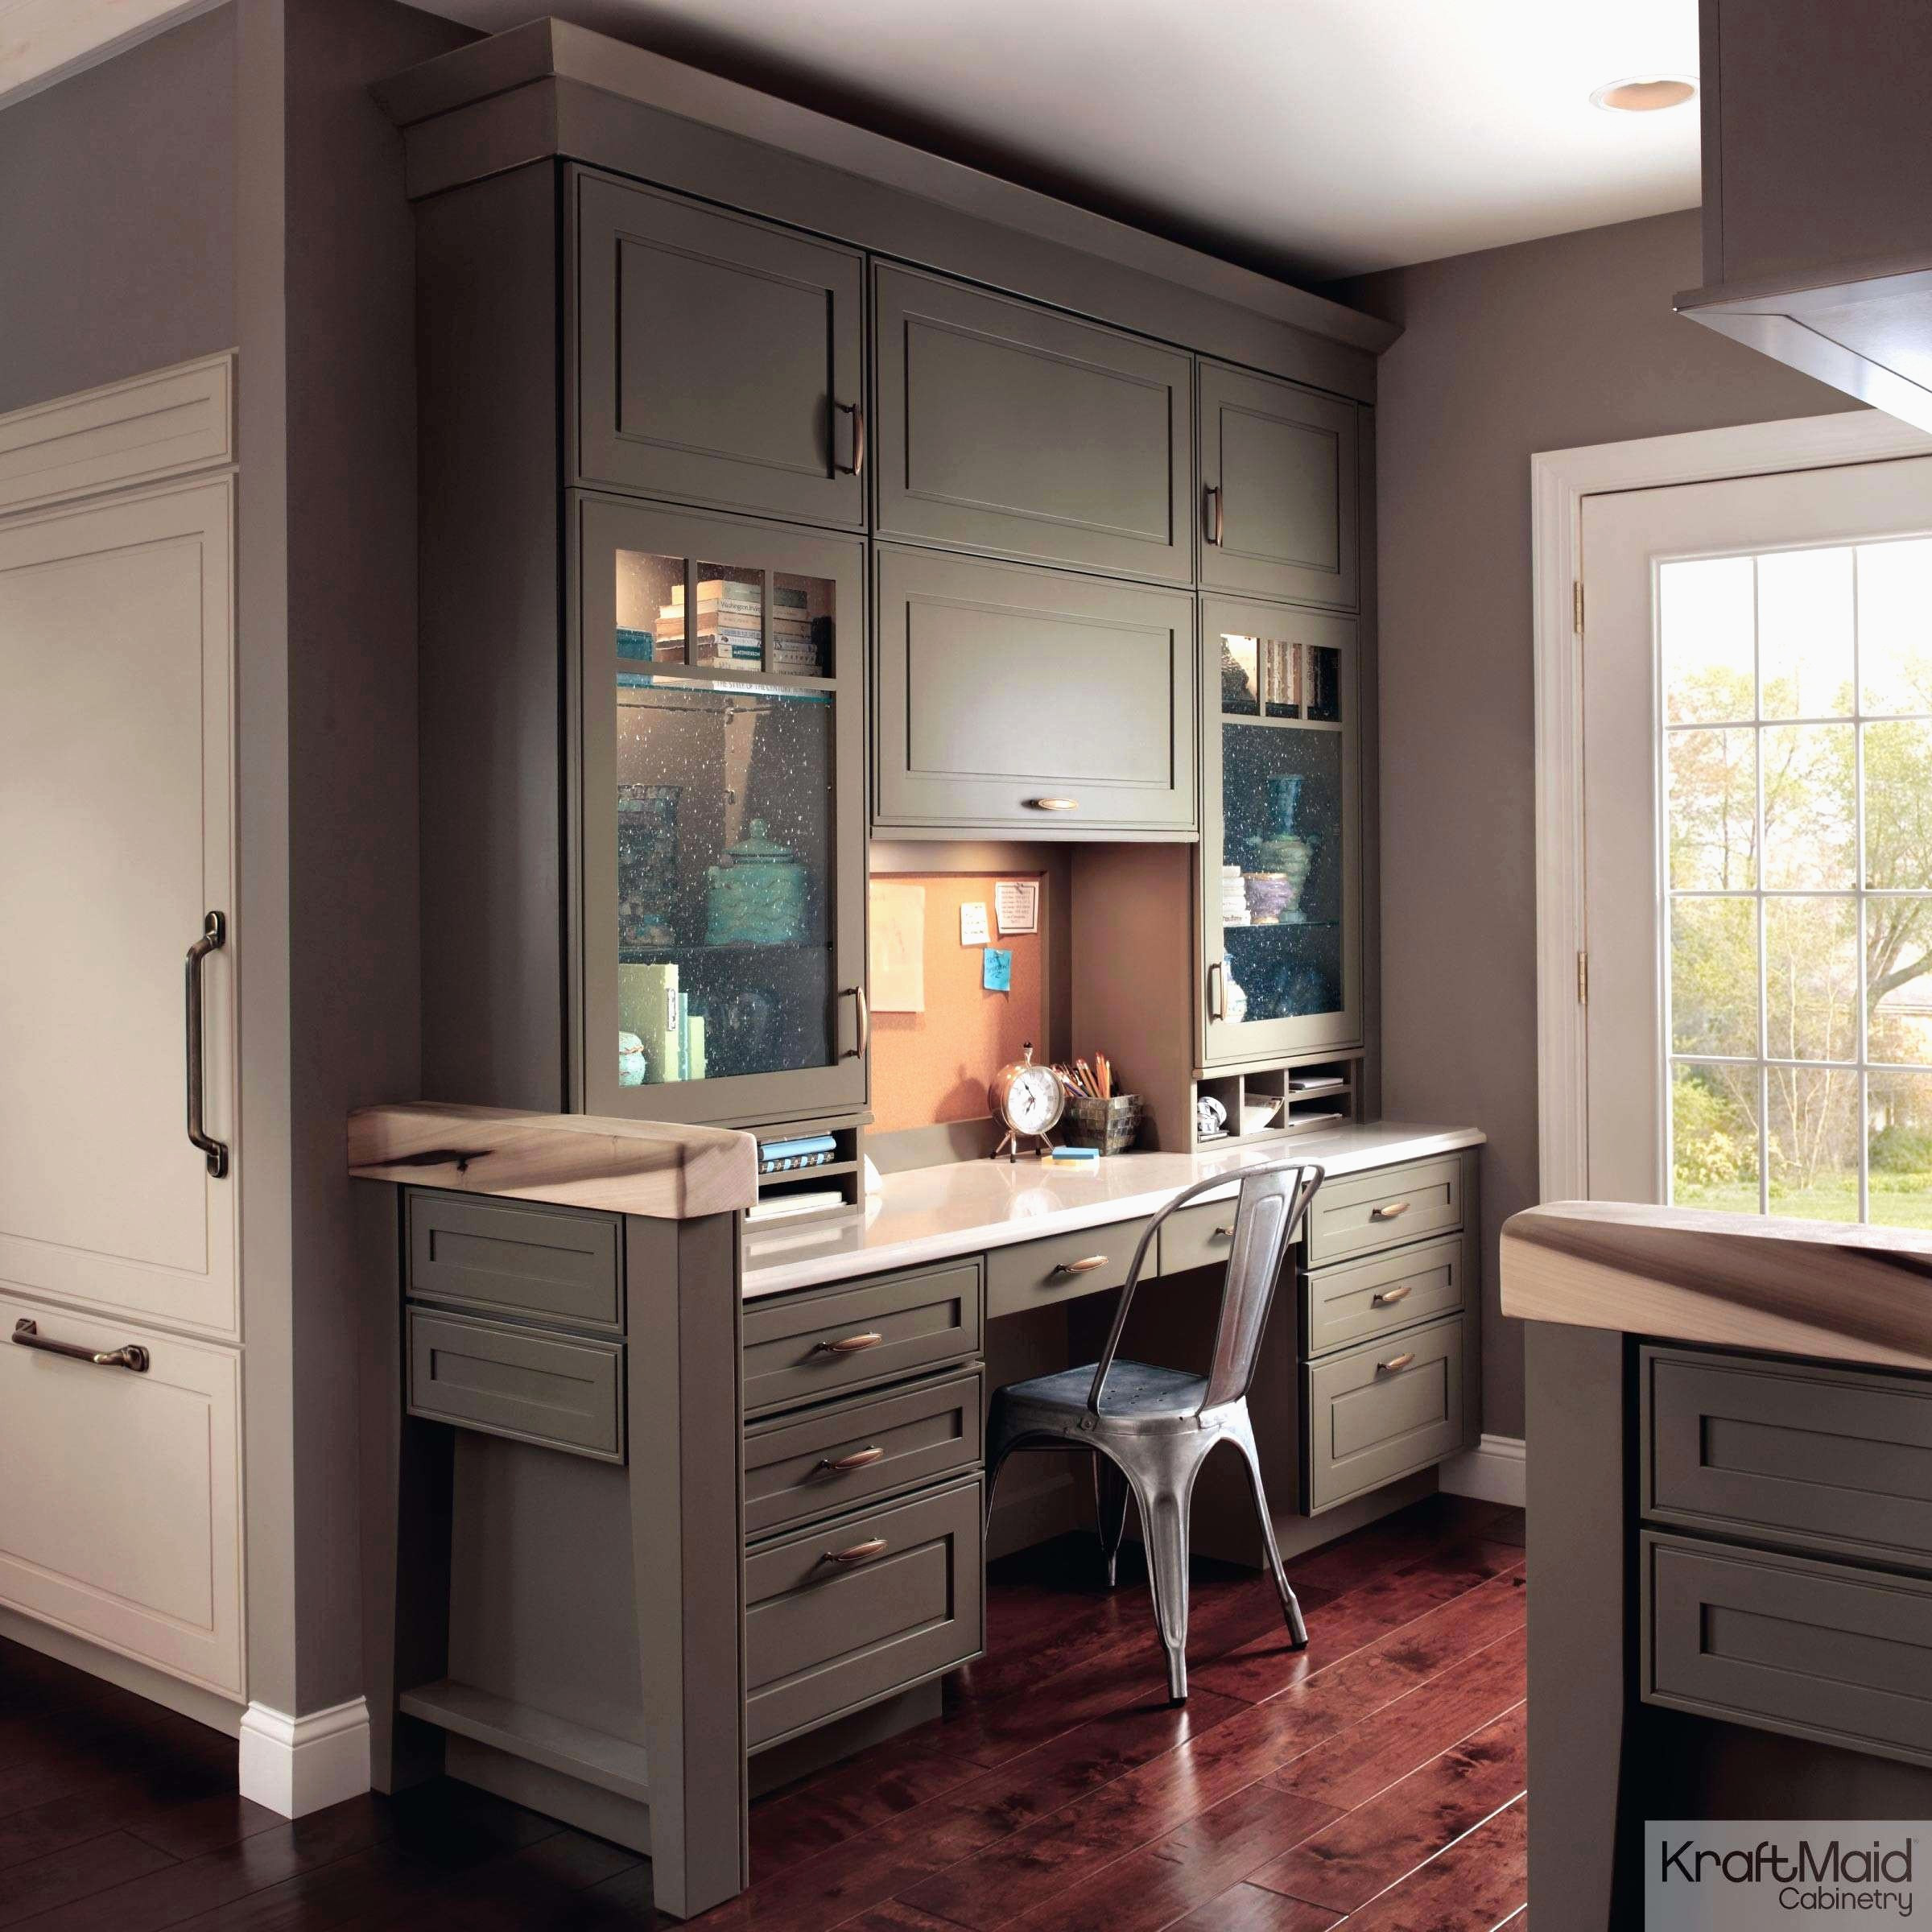 hardwood floor ideas pictures of 37 likeable floor tiles for kitchens peritile with wood floor tile kitchen ideas lovely pickled maple kitchen cabinets awesome kitchen cabinet 0d kitchen